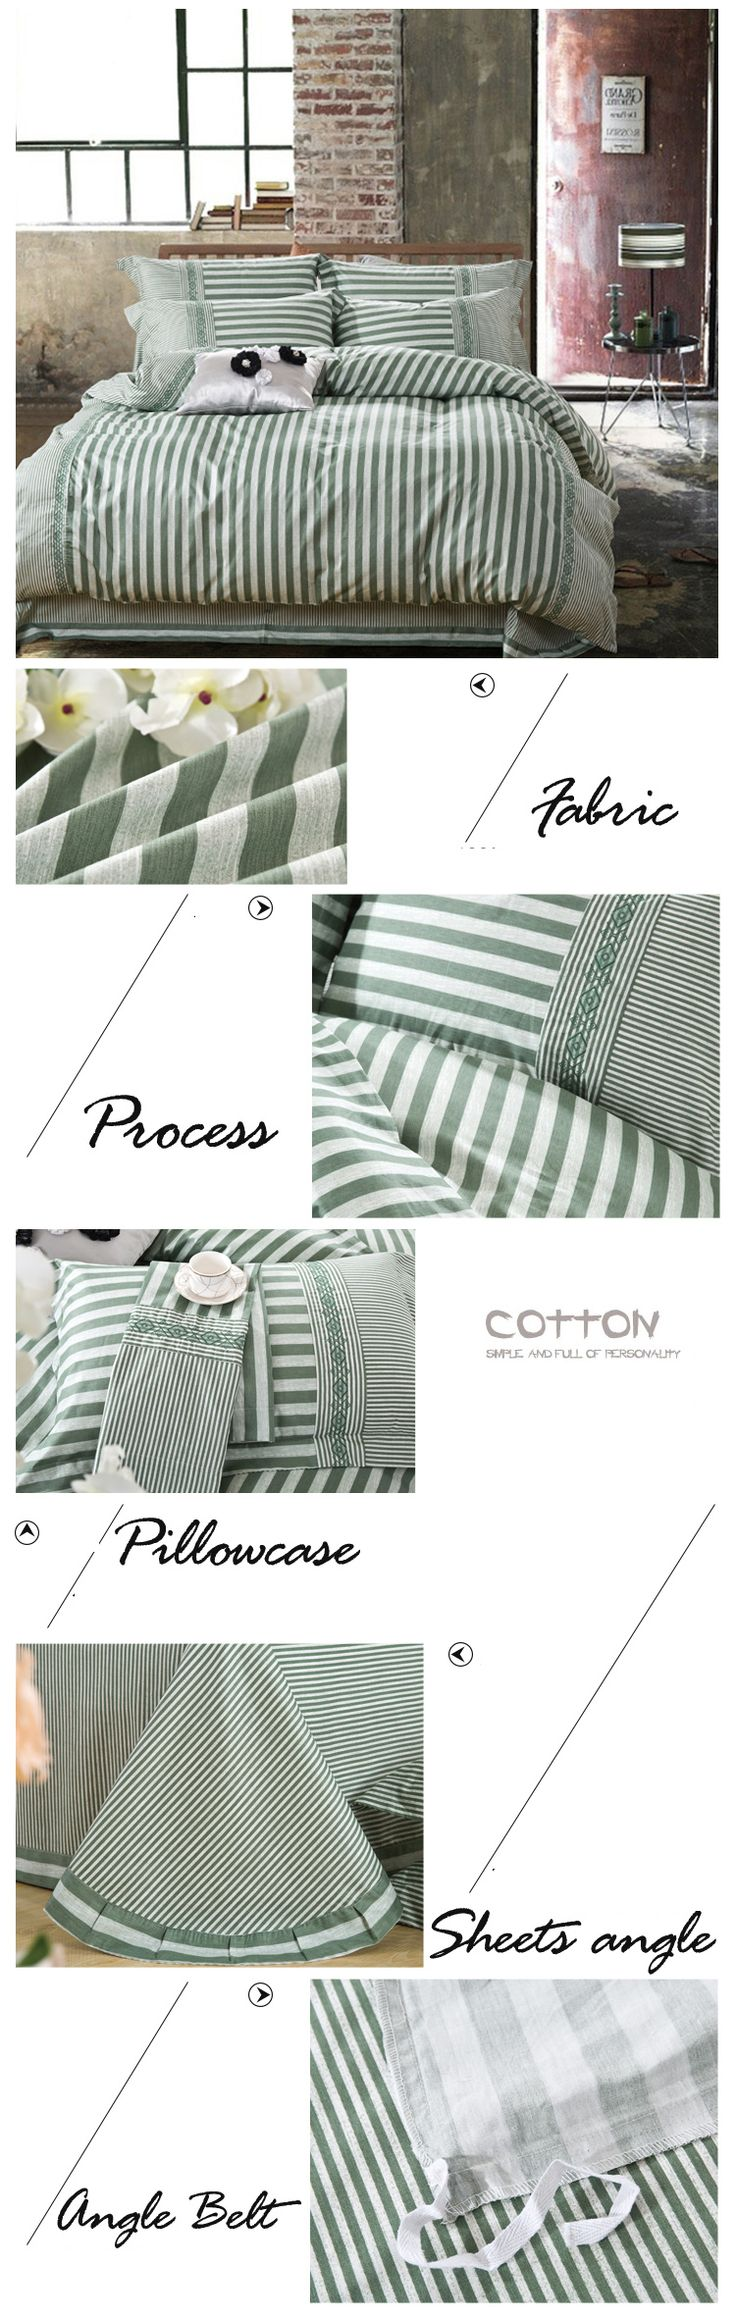 Embroidered Flower bed comforters bed linen cotton luxury bedding striped bedding green bed sheet bedclothes #831|Embroidered bedding sets